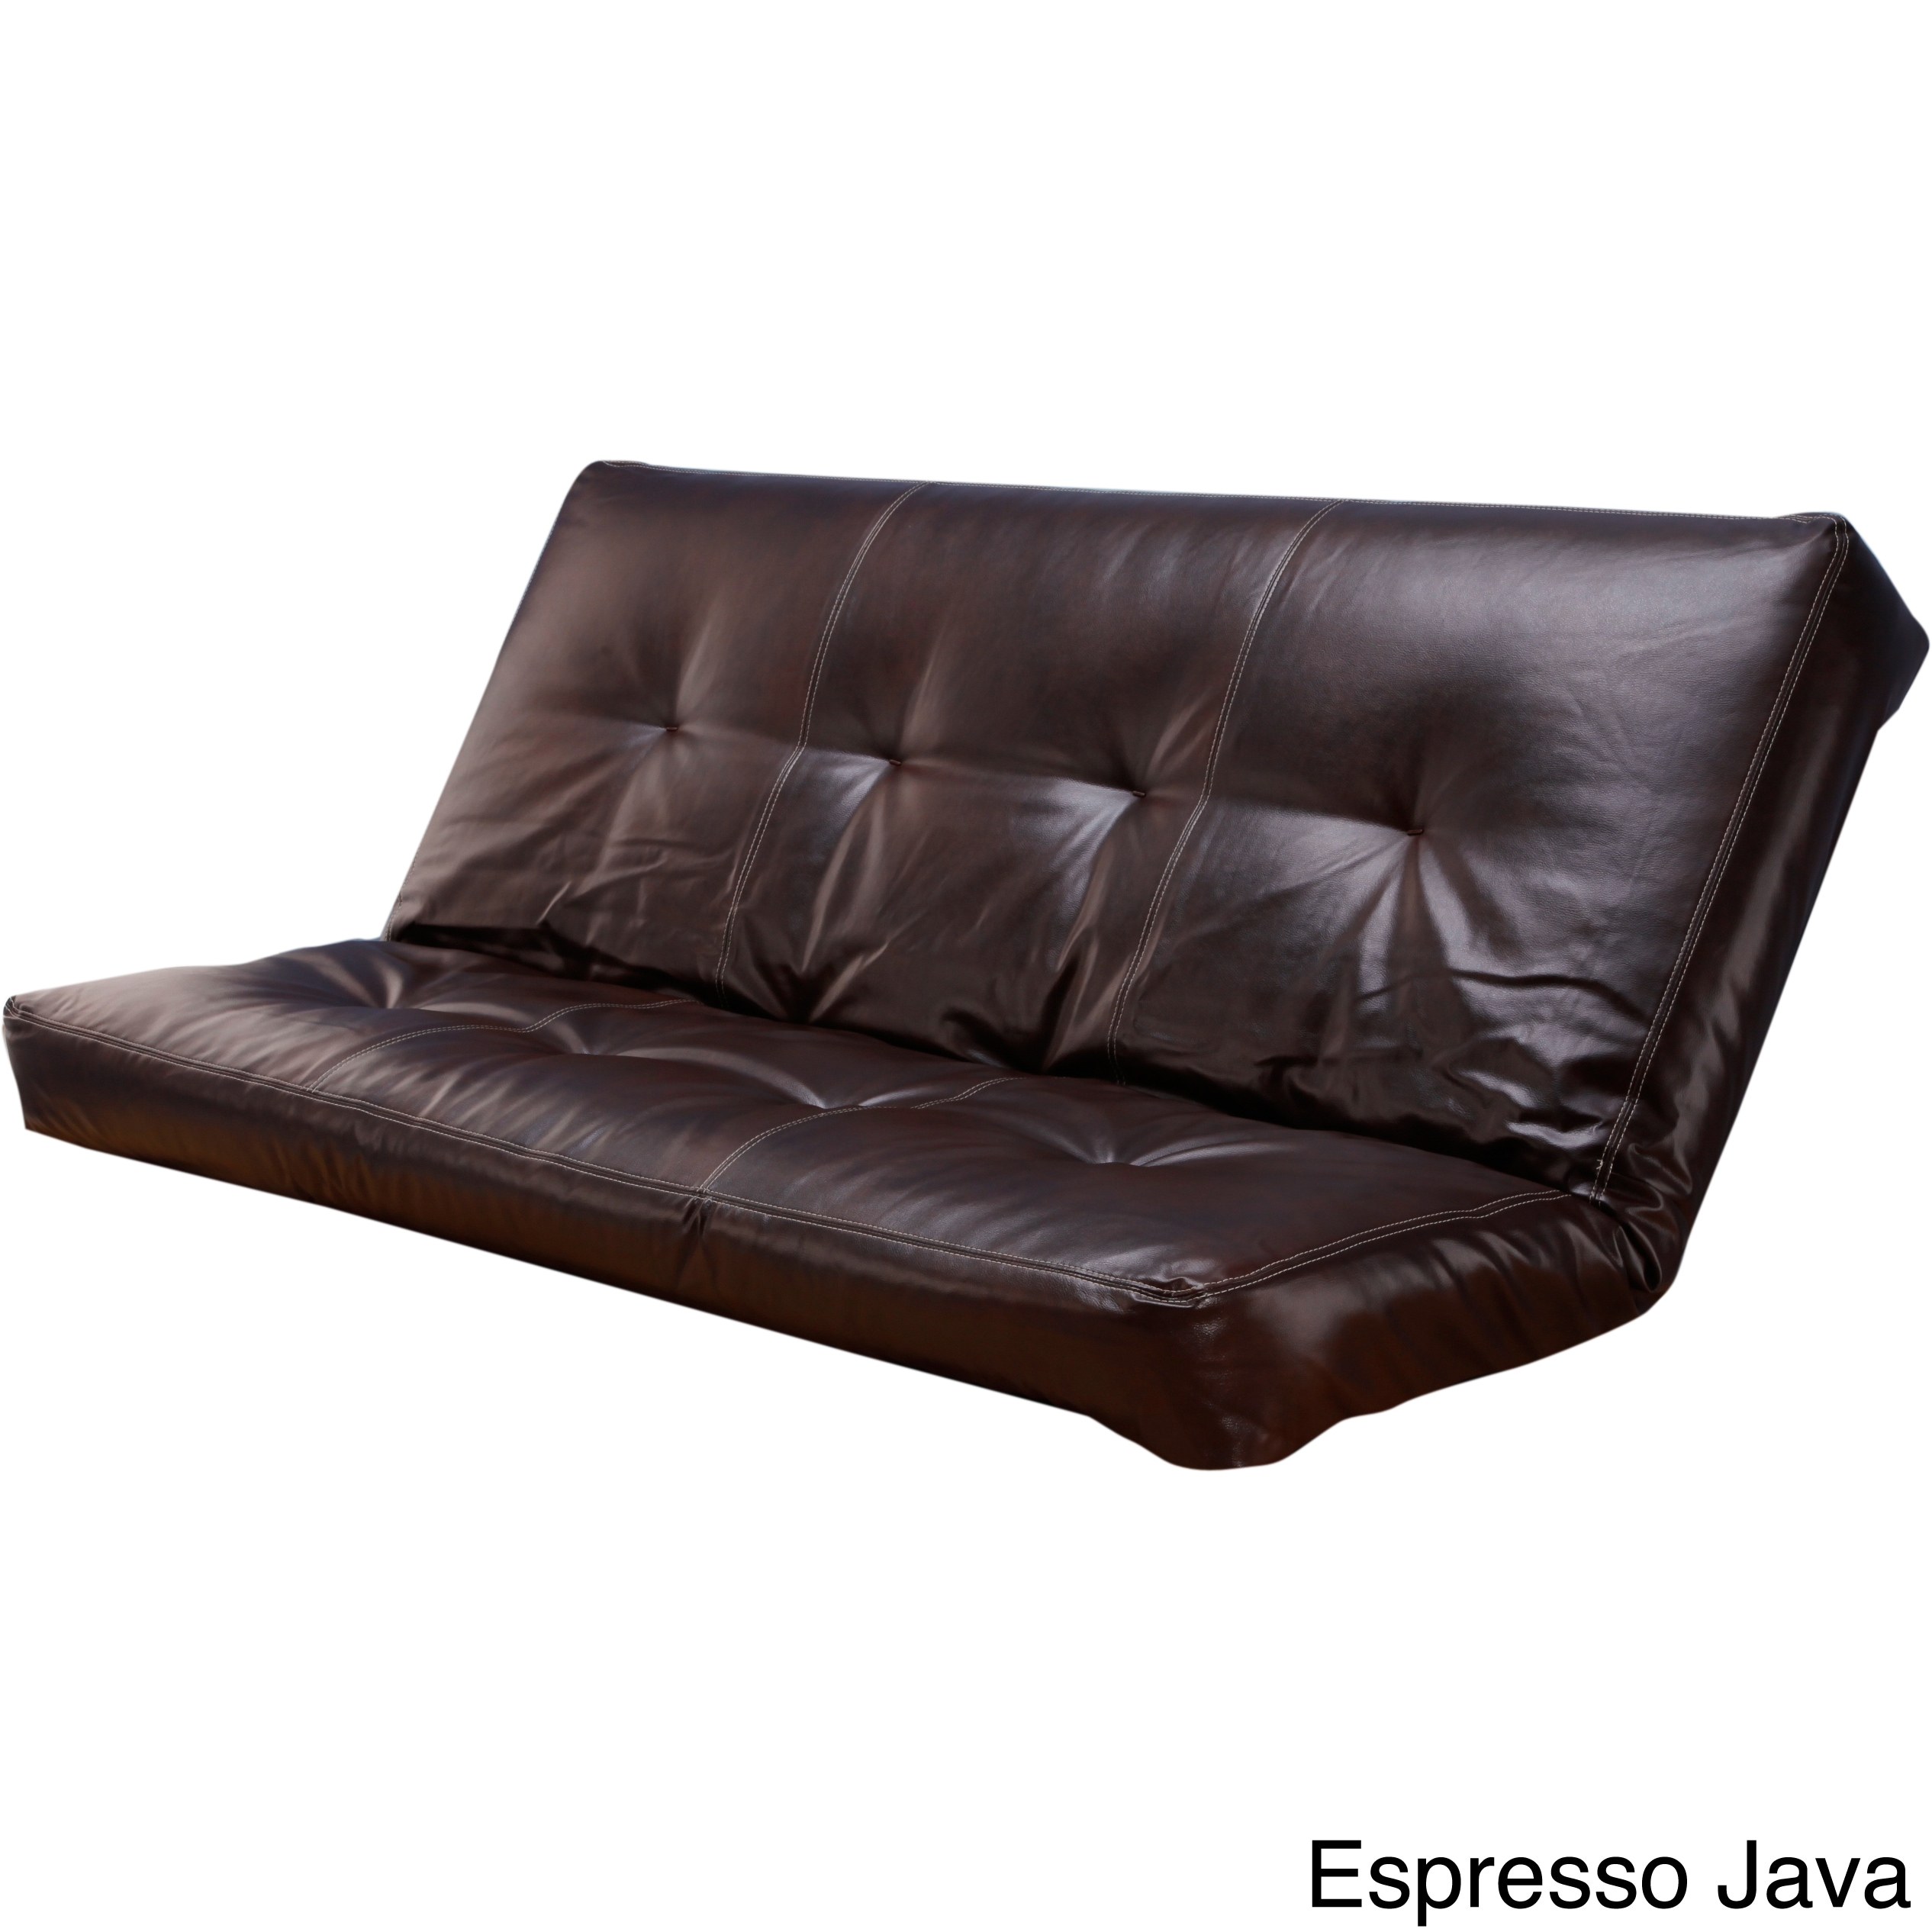 Clay Alder Home Zumbro Bonded Leather Full Size Futon Cover Free Shipping Today Com 8099609